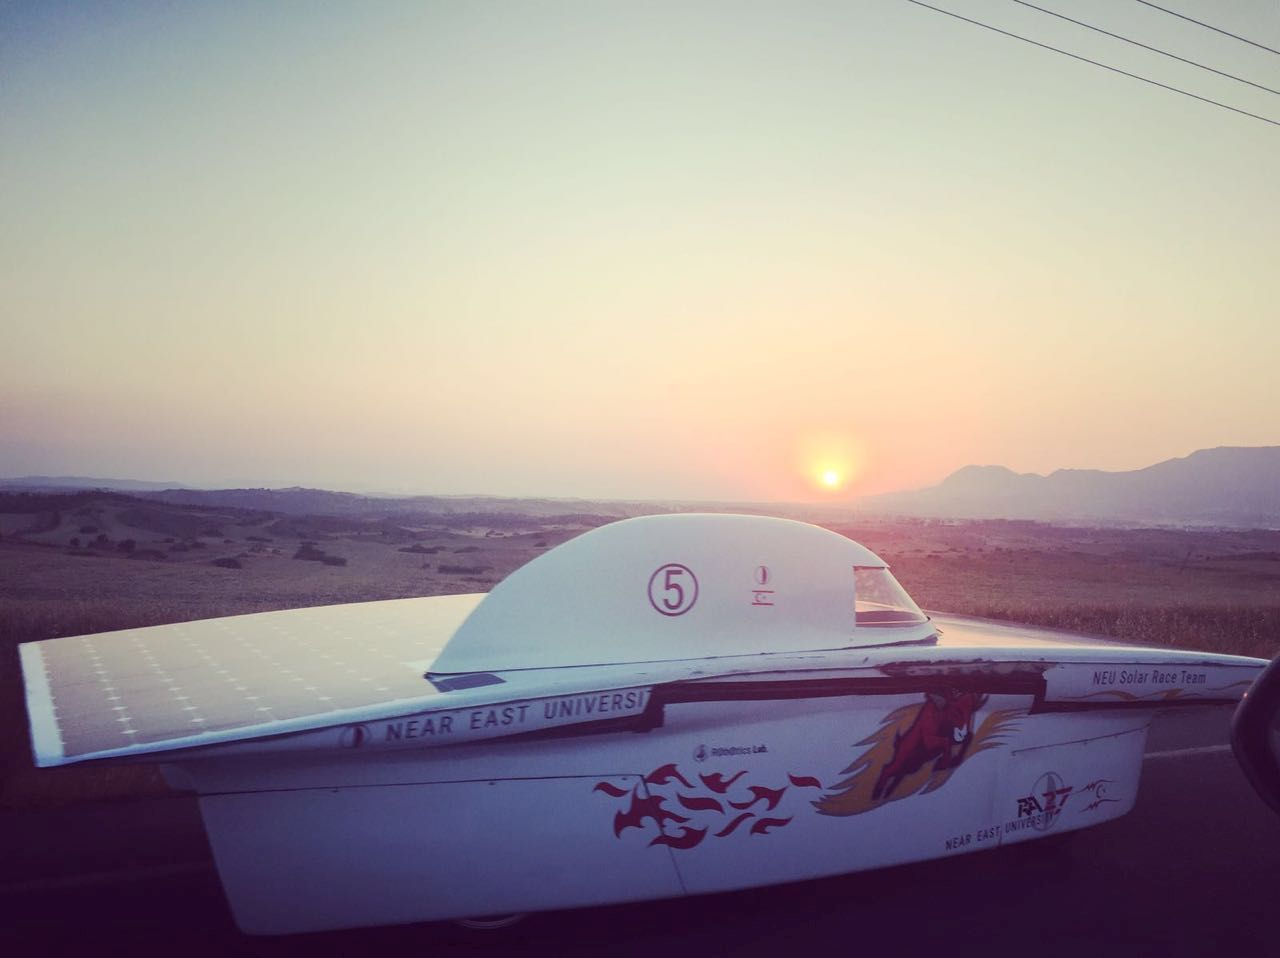 The Solar Powered Vehicle of Near East University, RA27 is soon to debut in South Africa